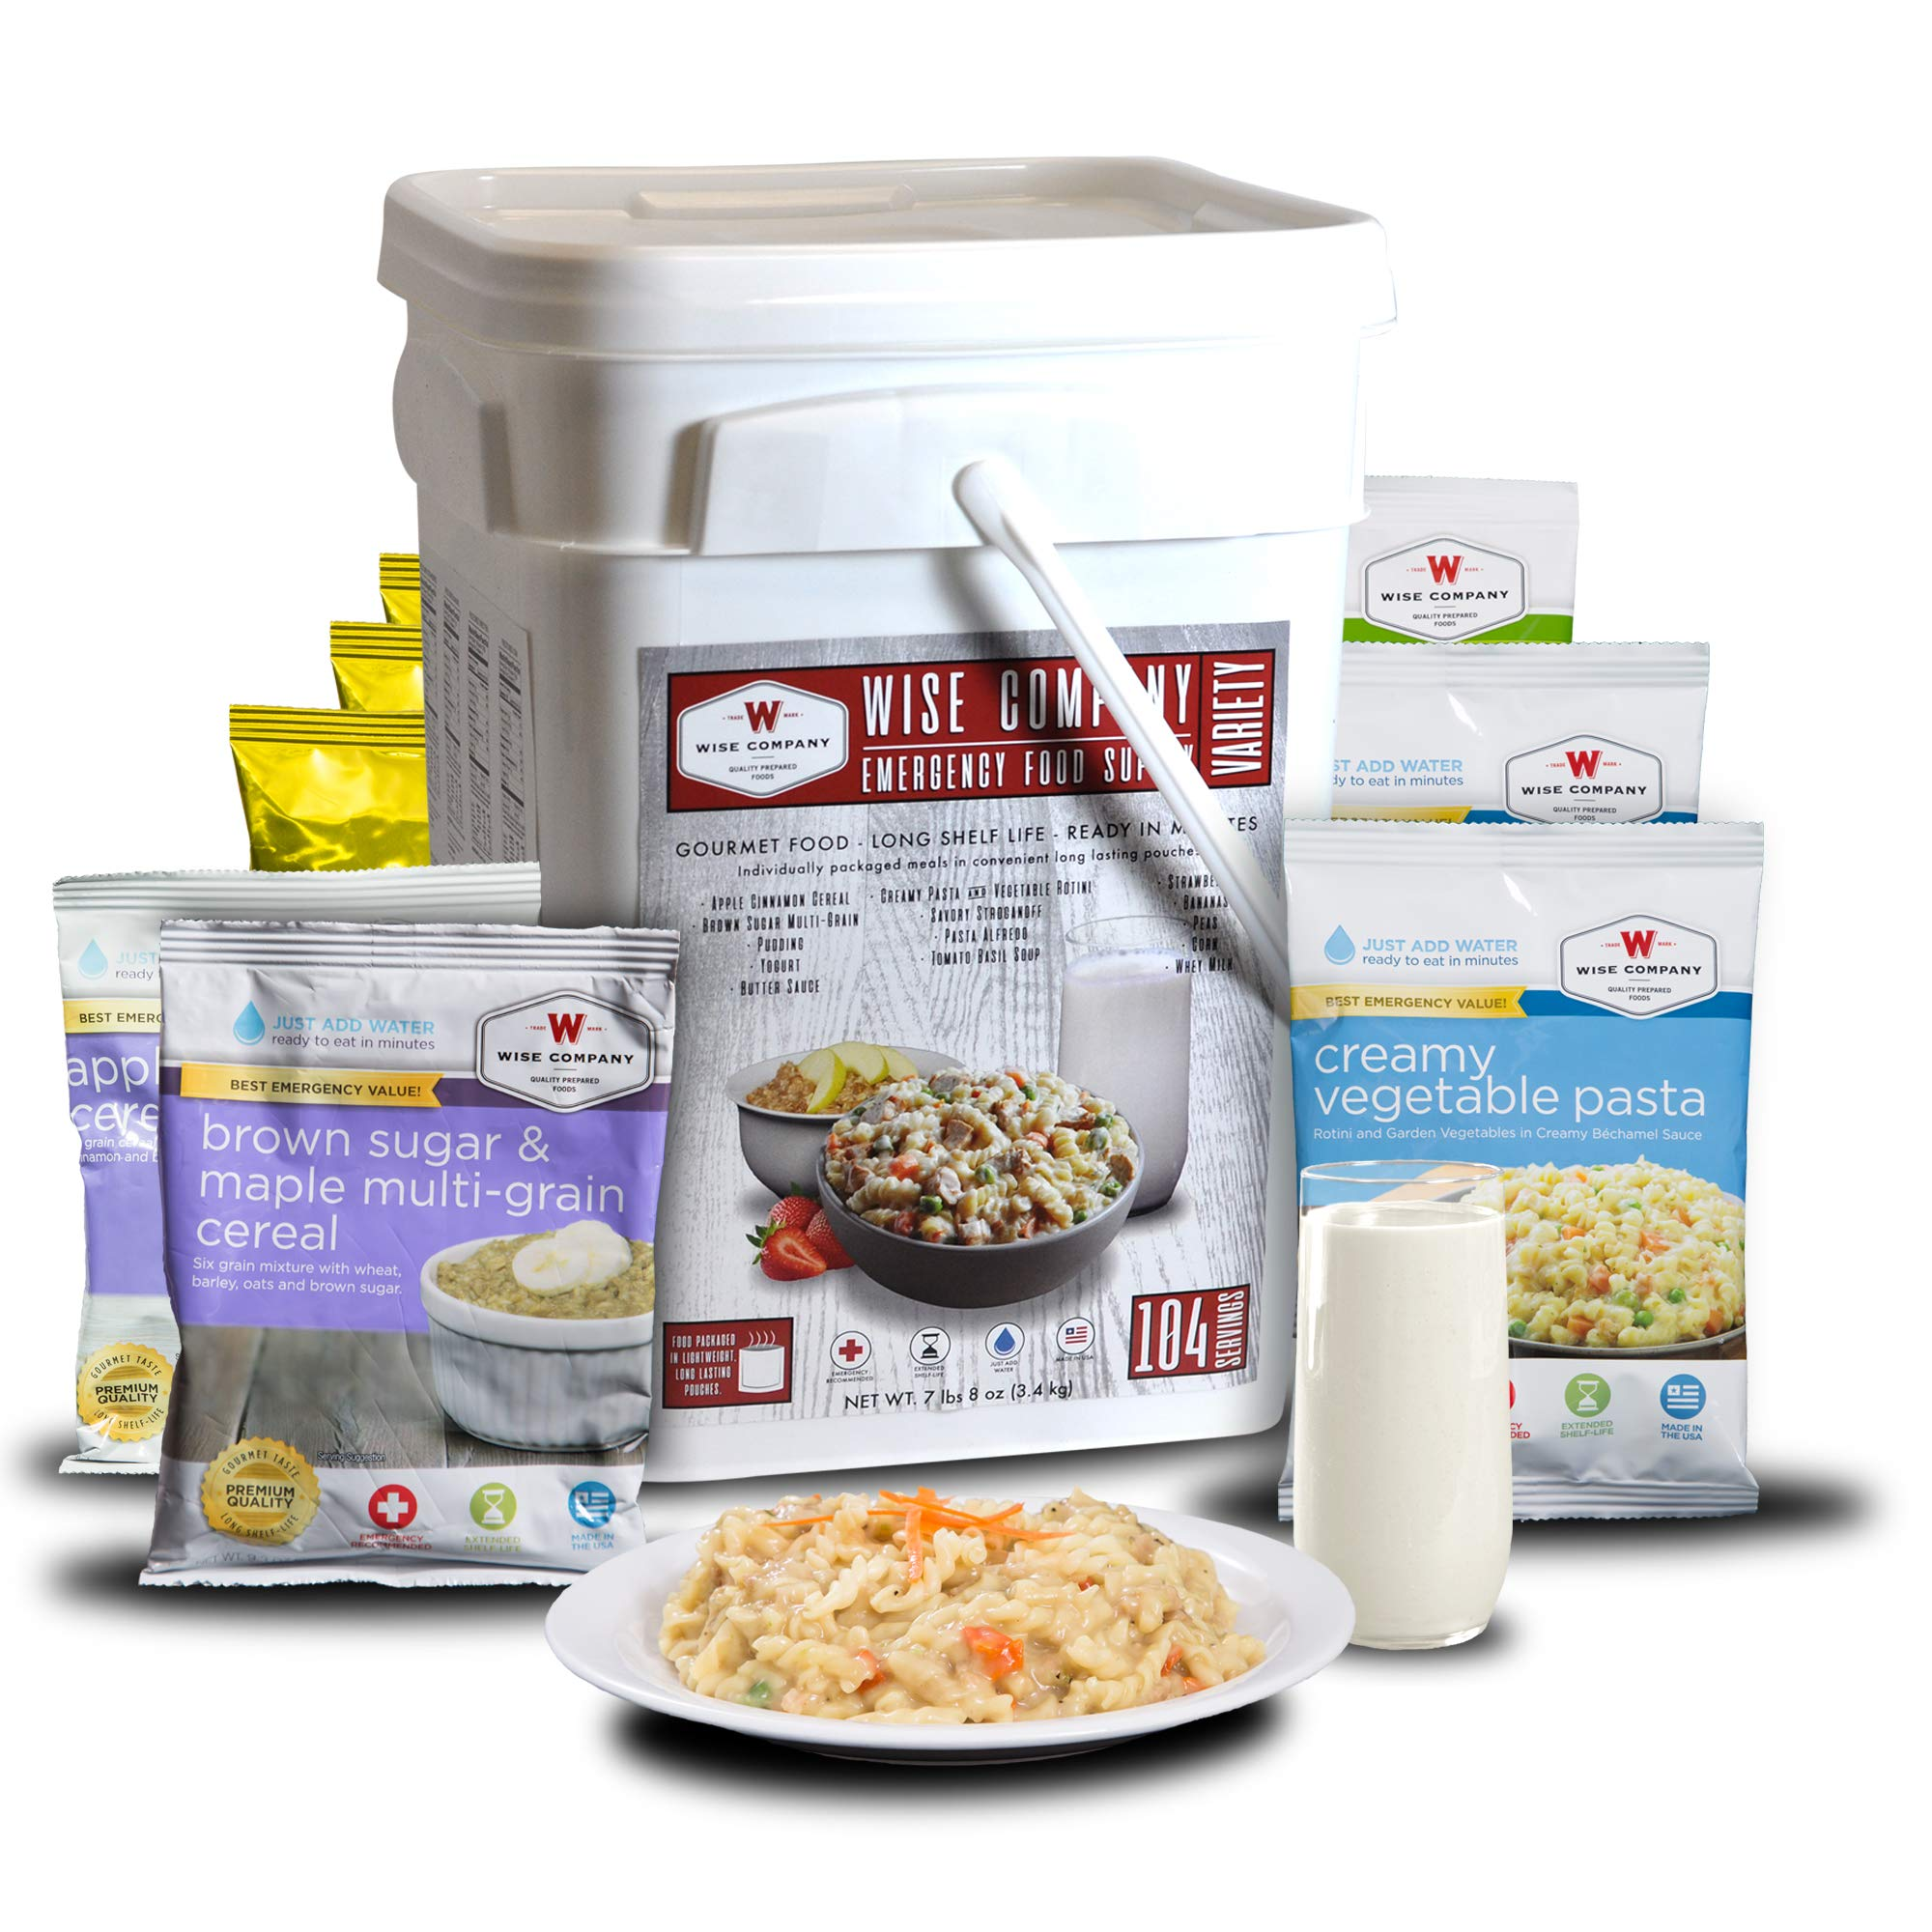 Wise Company Emergency Food Supply, Variety Pack, 25-Year Shelf Life, 104 Servings by Wise Company